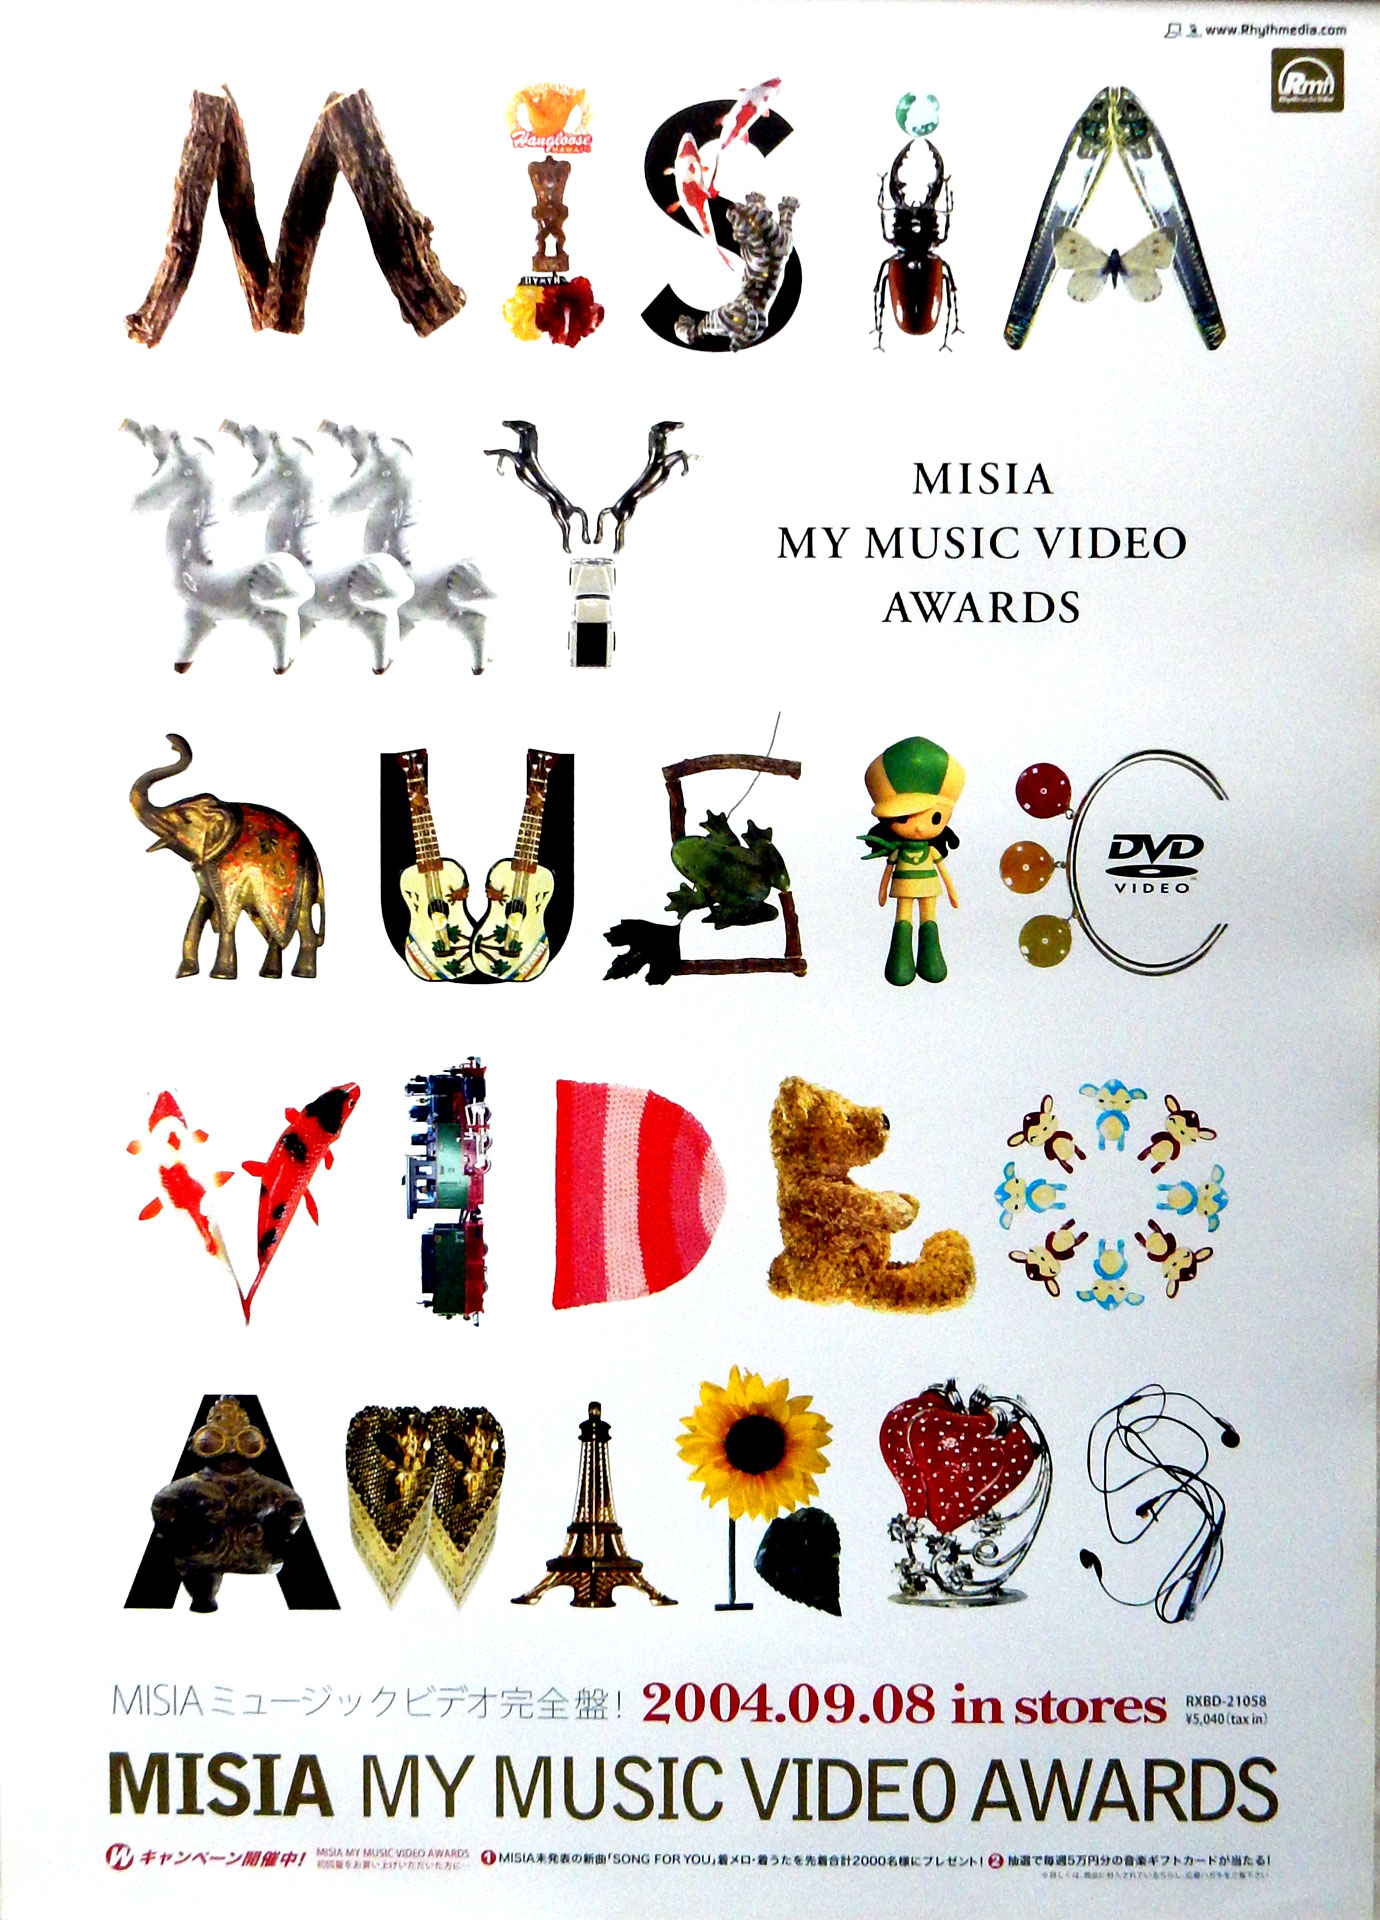 MISIA 「MISIA MY MUSIC VIDEO AWARDS」のポスター